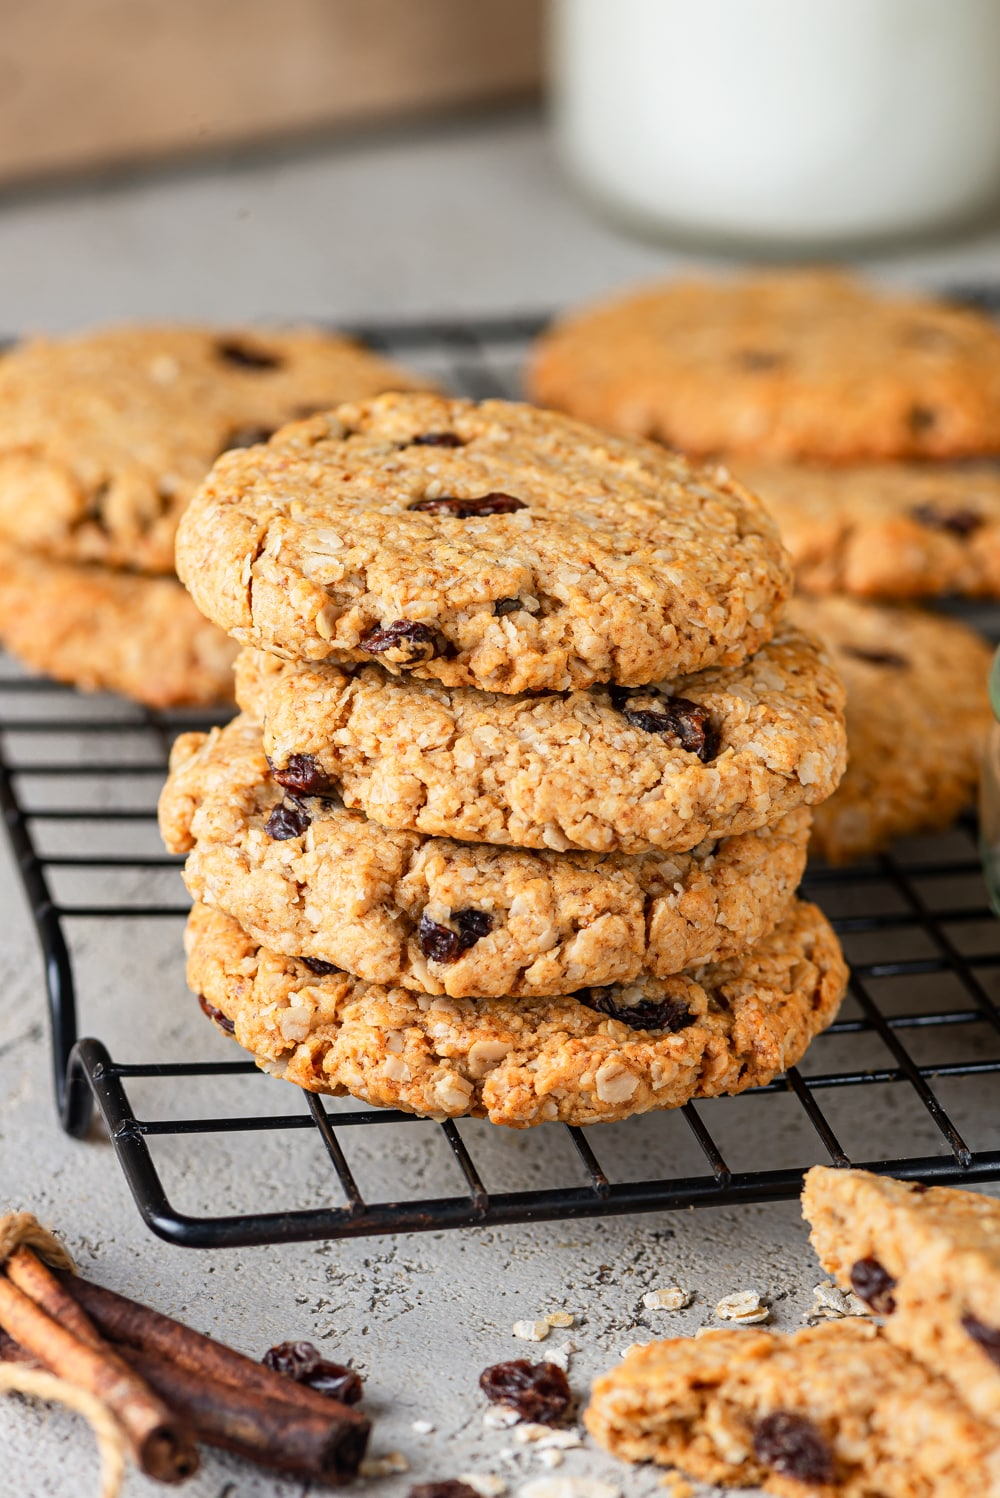 A stack of four vegan oatmeal raisin cookies on a wire rack, with five cookies set behind the stack. A bundle of cinnamon and broken in half cookies are in front of the rack and everything is set on a grey counter.